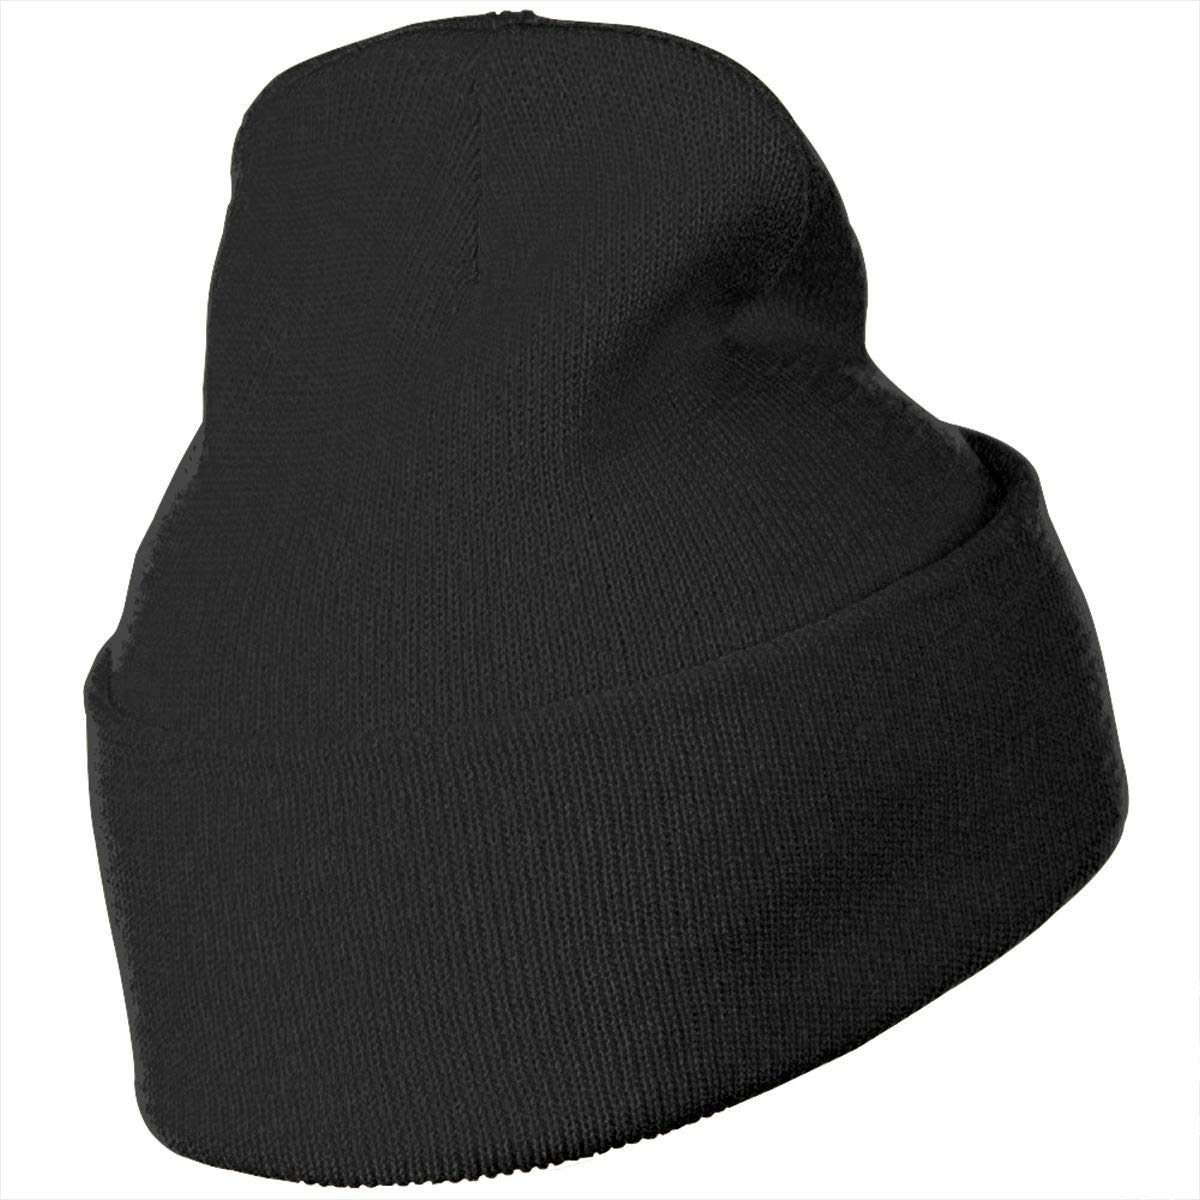 JimHappy Banana Hat for Men and Women Winter Warm Hats Knit Slouchy Thick Skull Cap Black